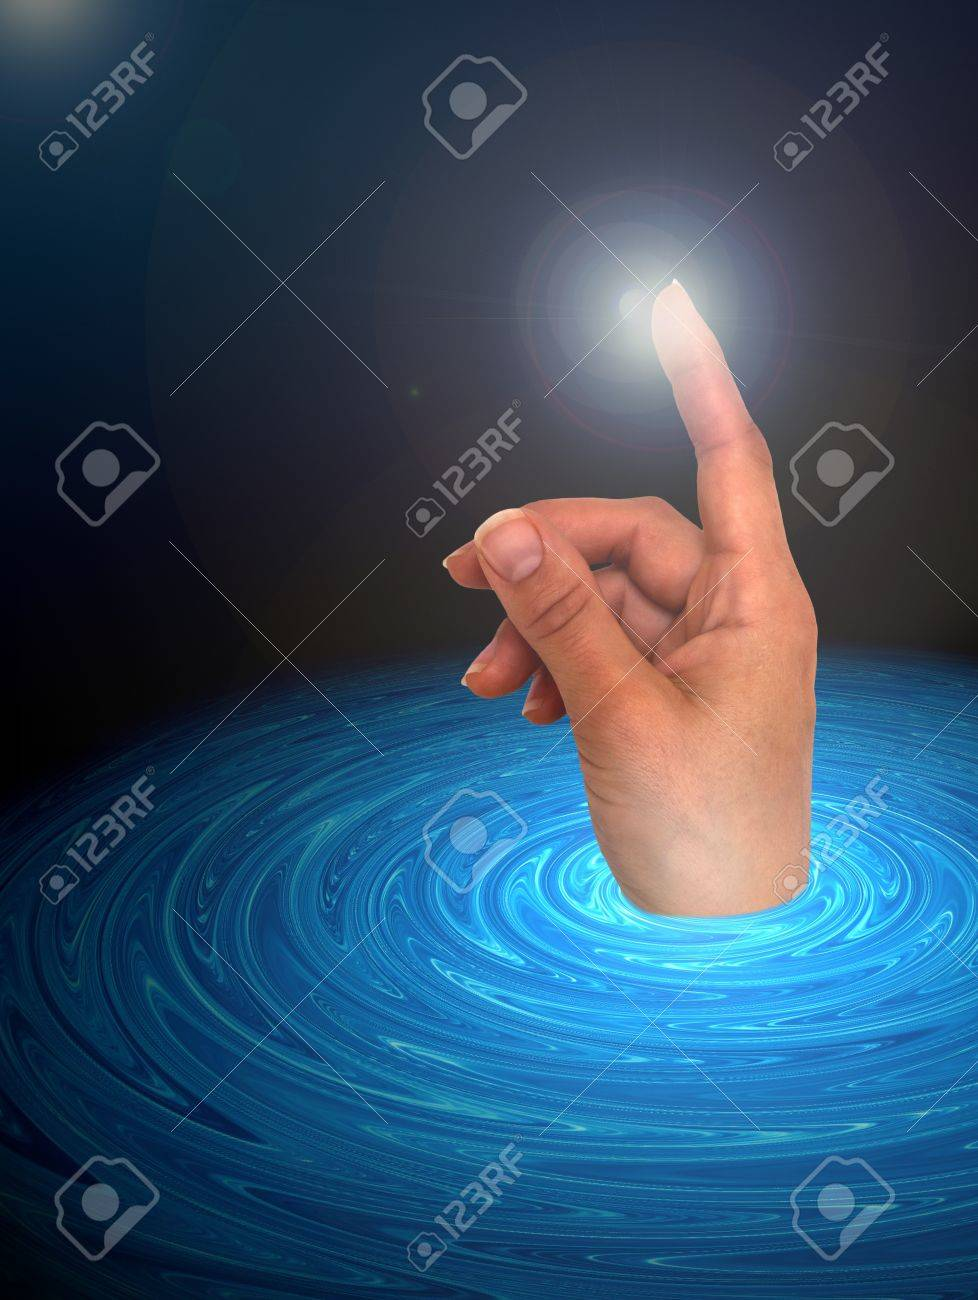 Touch the space abstract background Stock Photo - 13753250